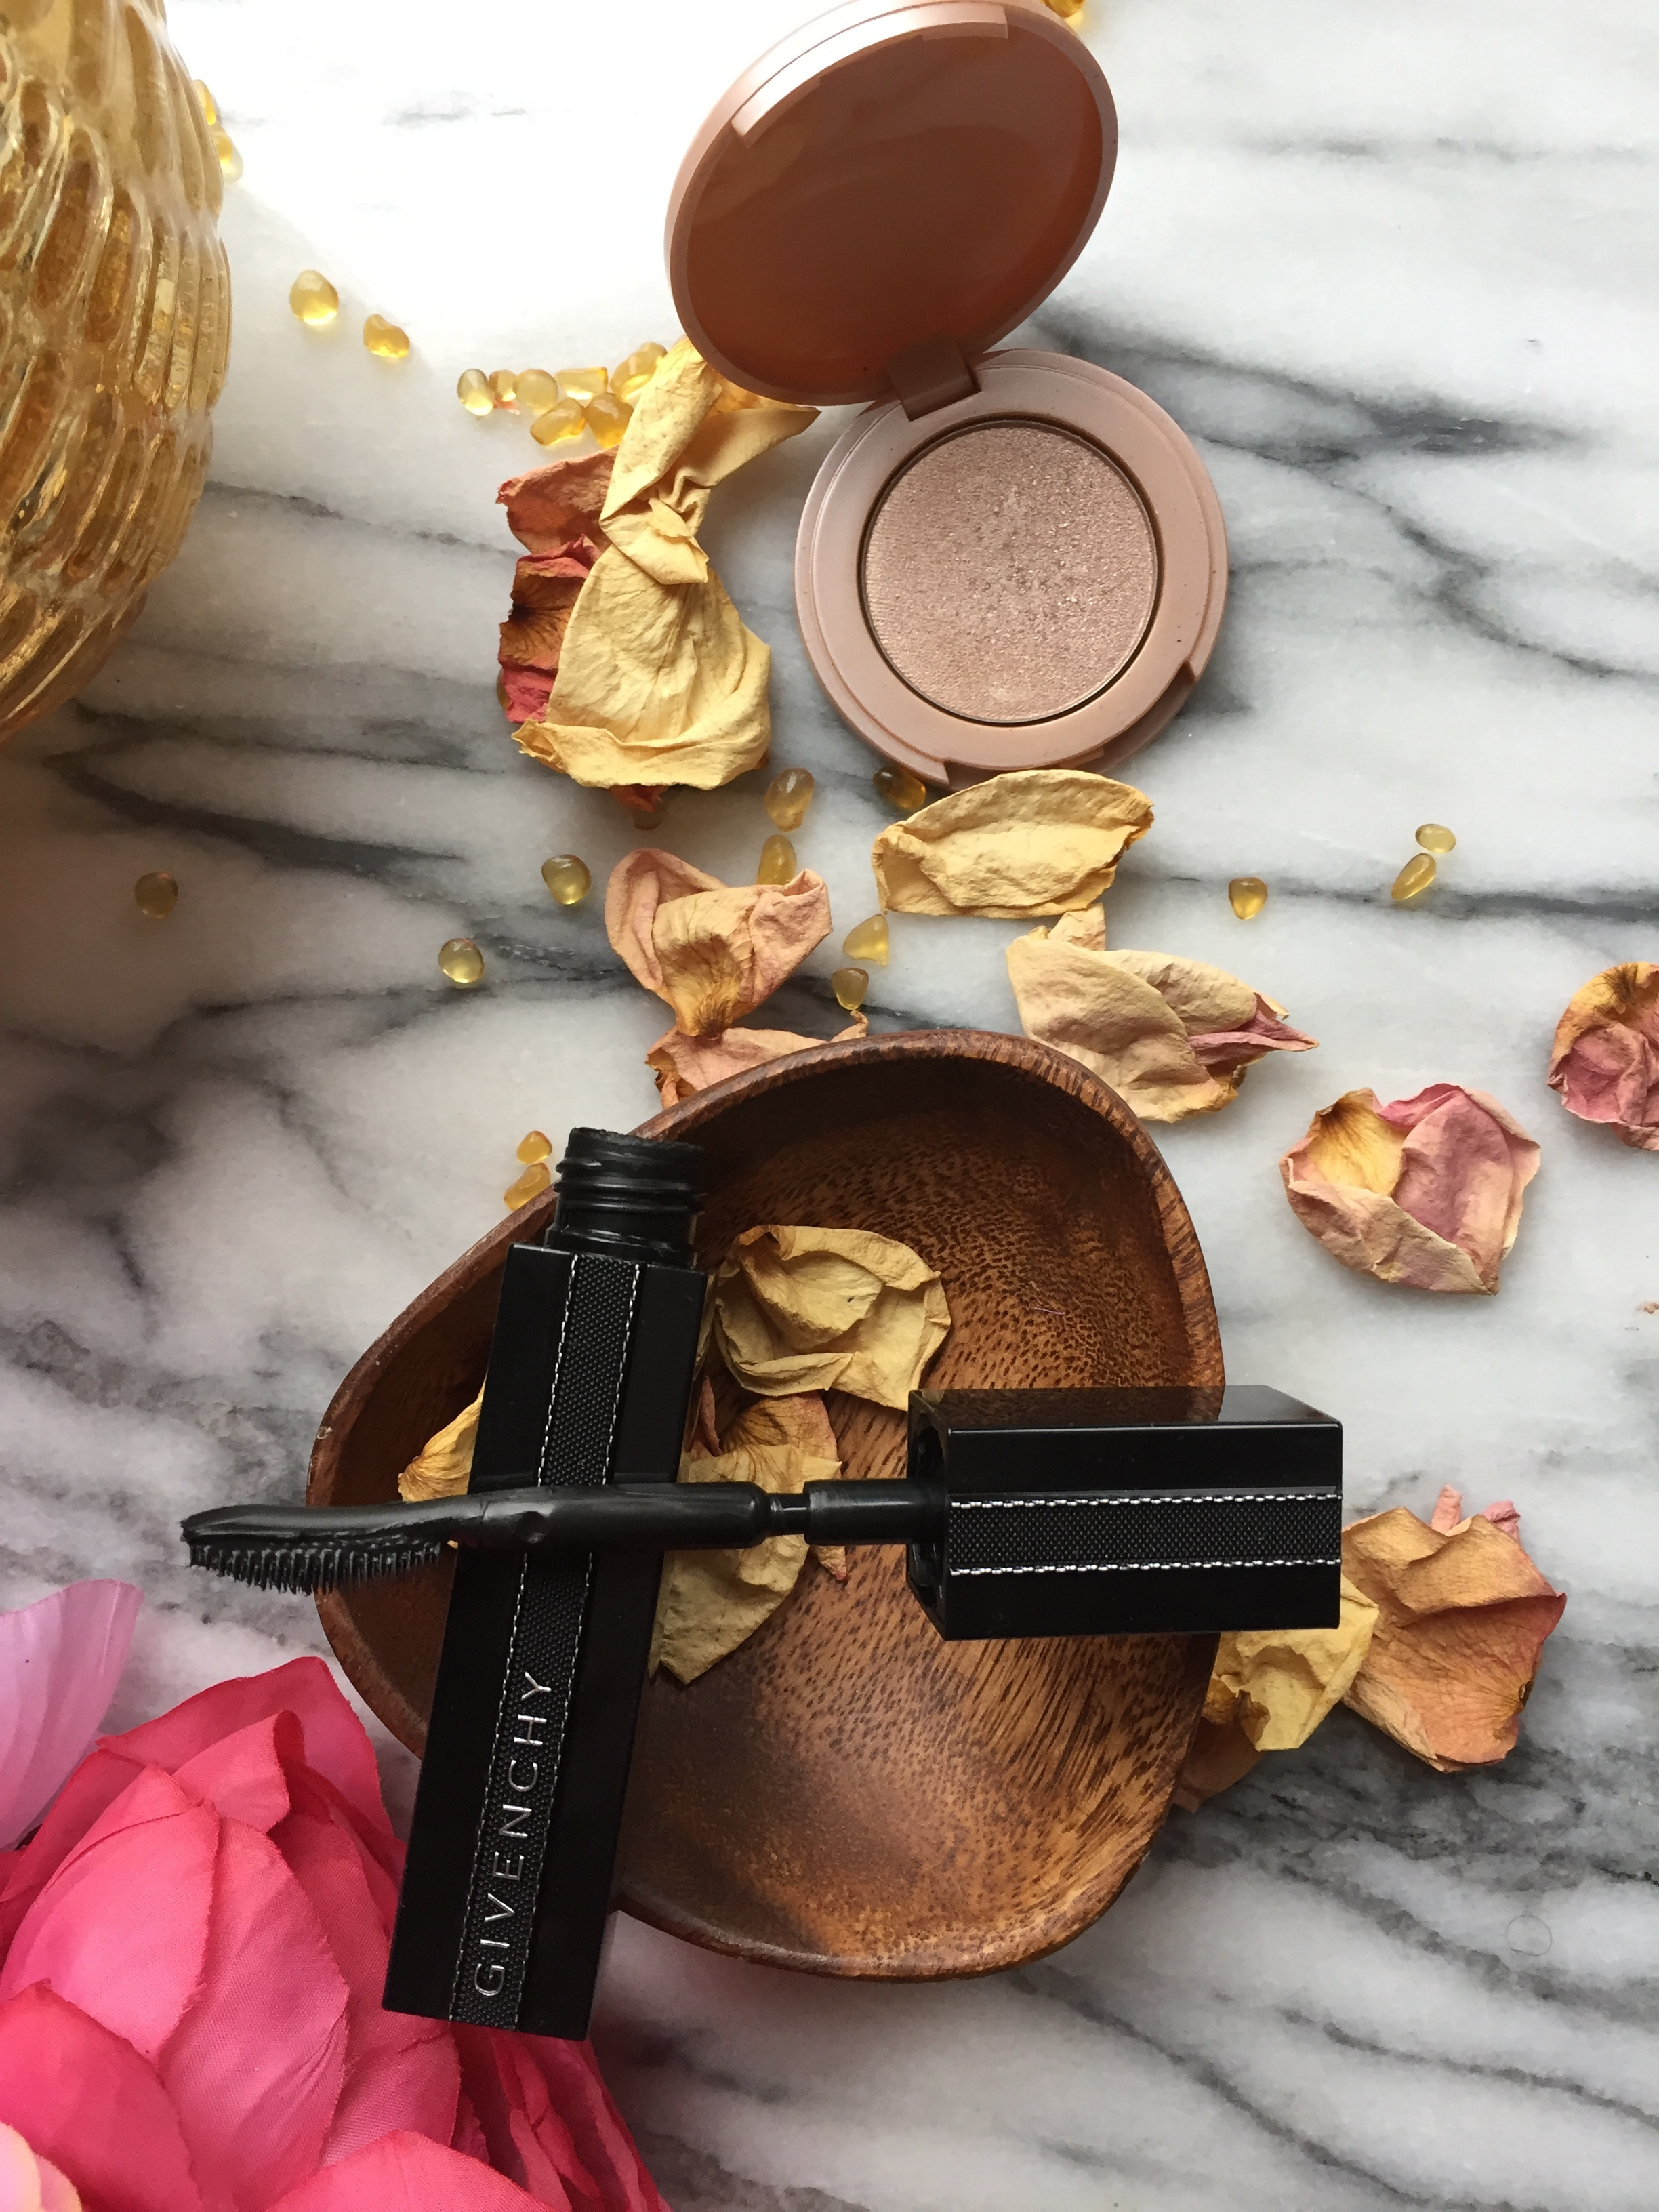 Givenchy Noir Interdit Mascara and Tarte Stunner Highlighter